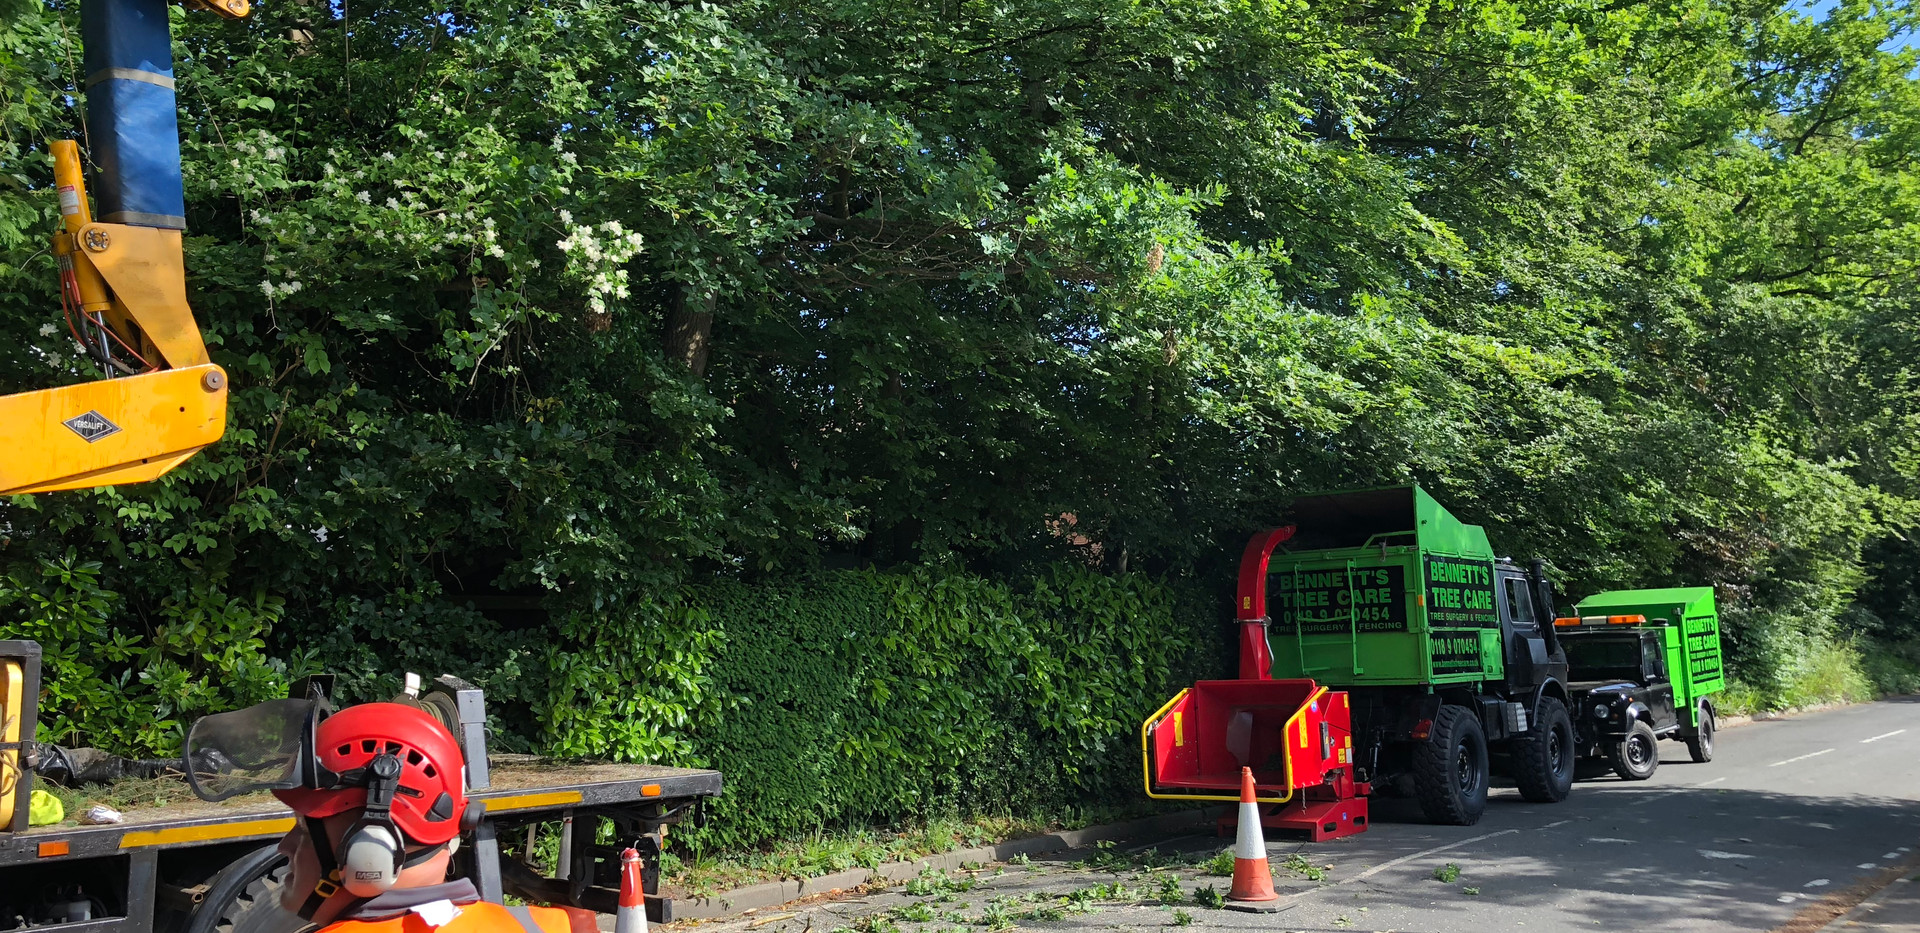 Bennetts Tree Care  road side tree work wokingham beach trebeach reductione reduction